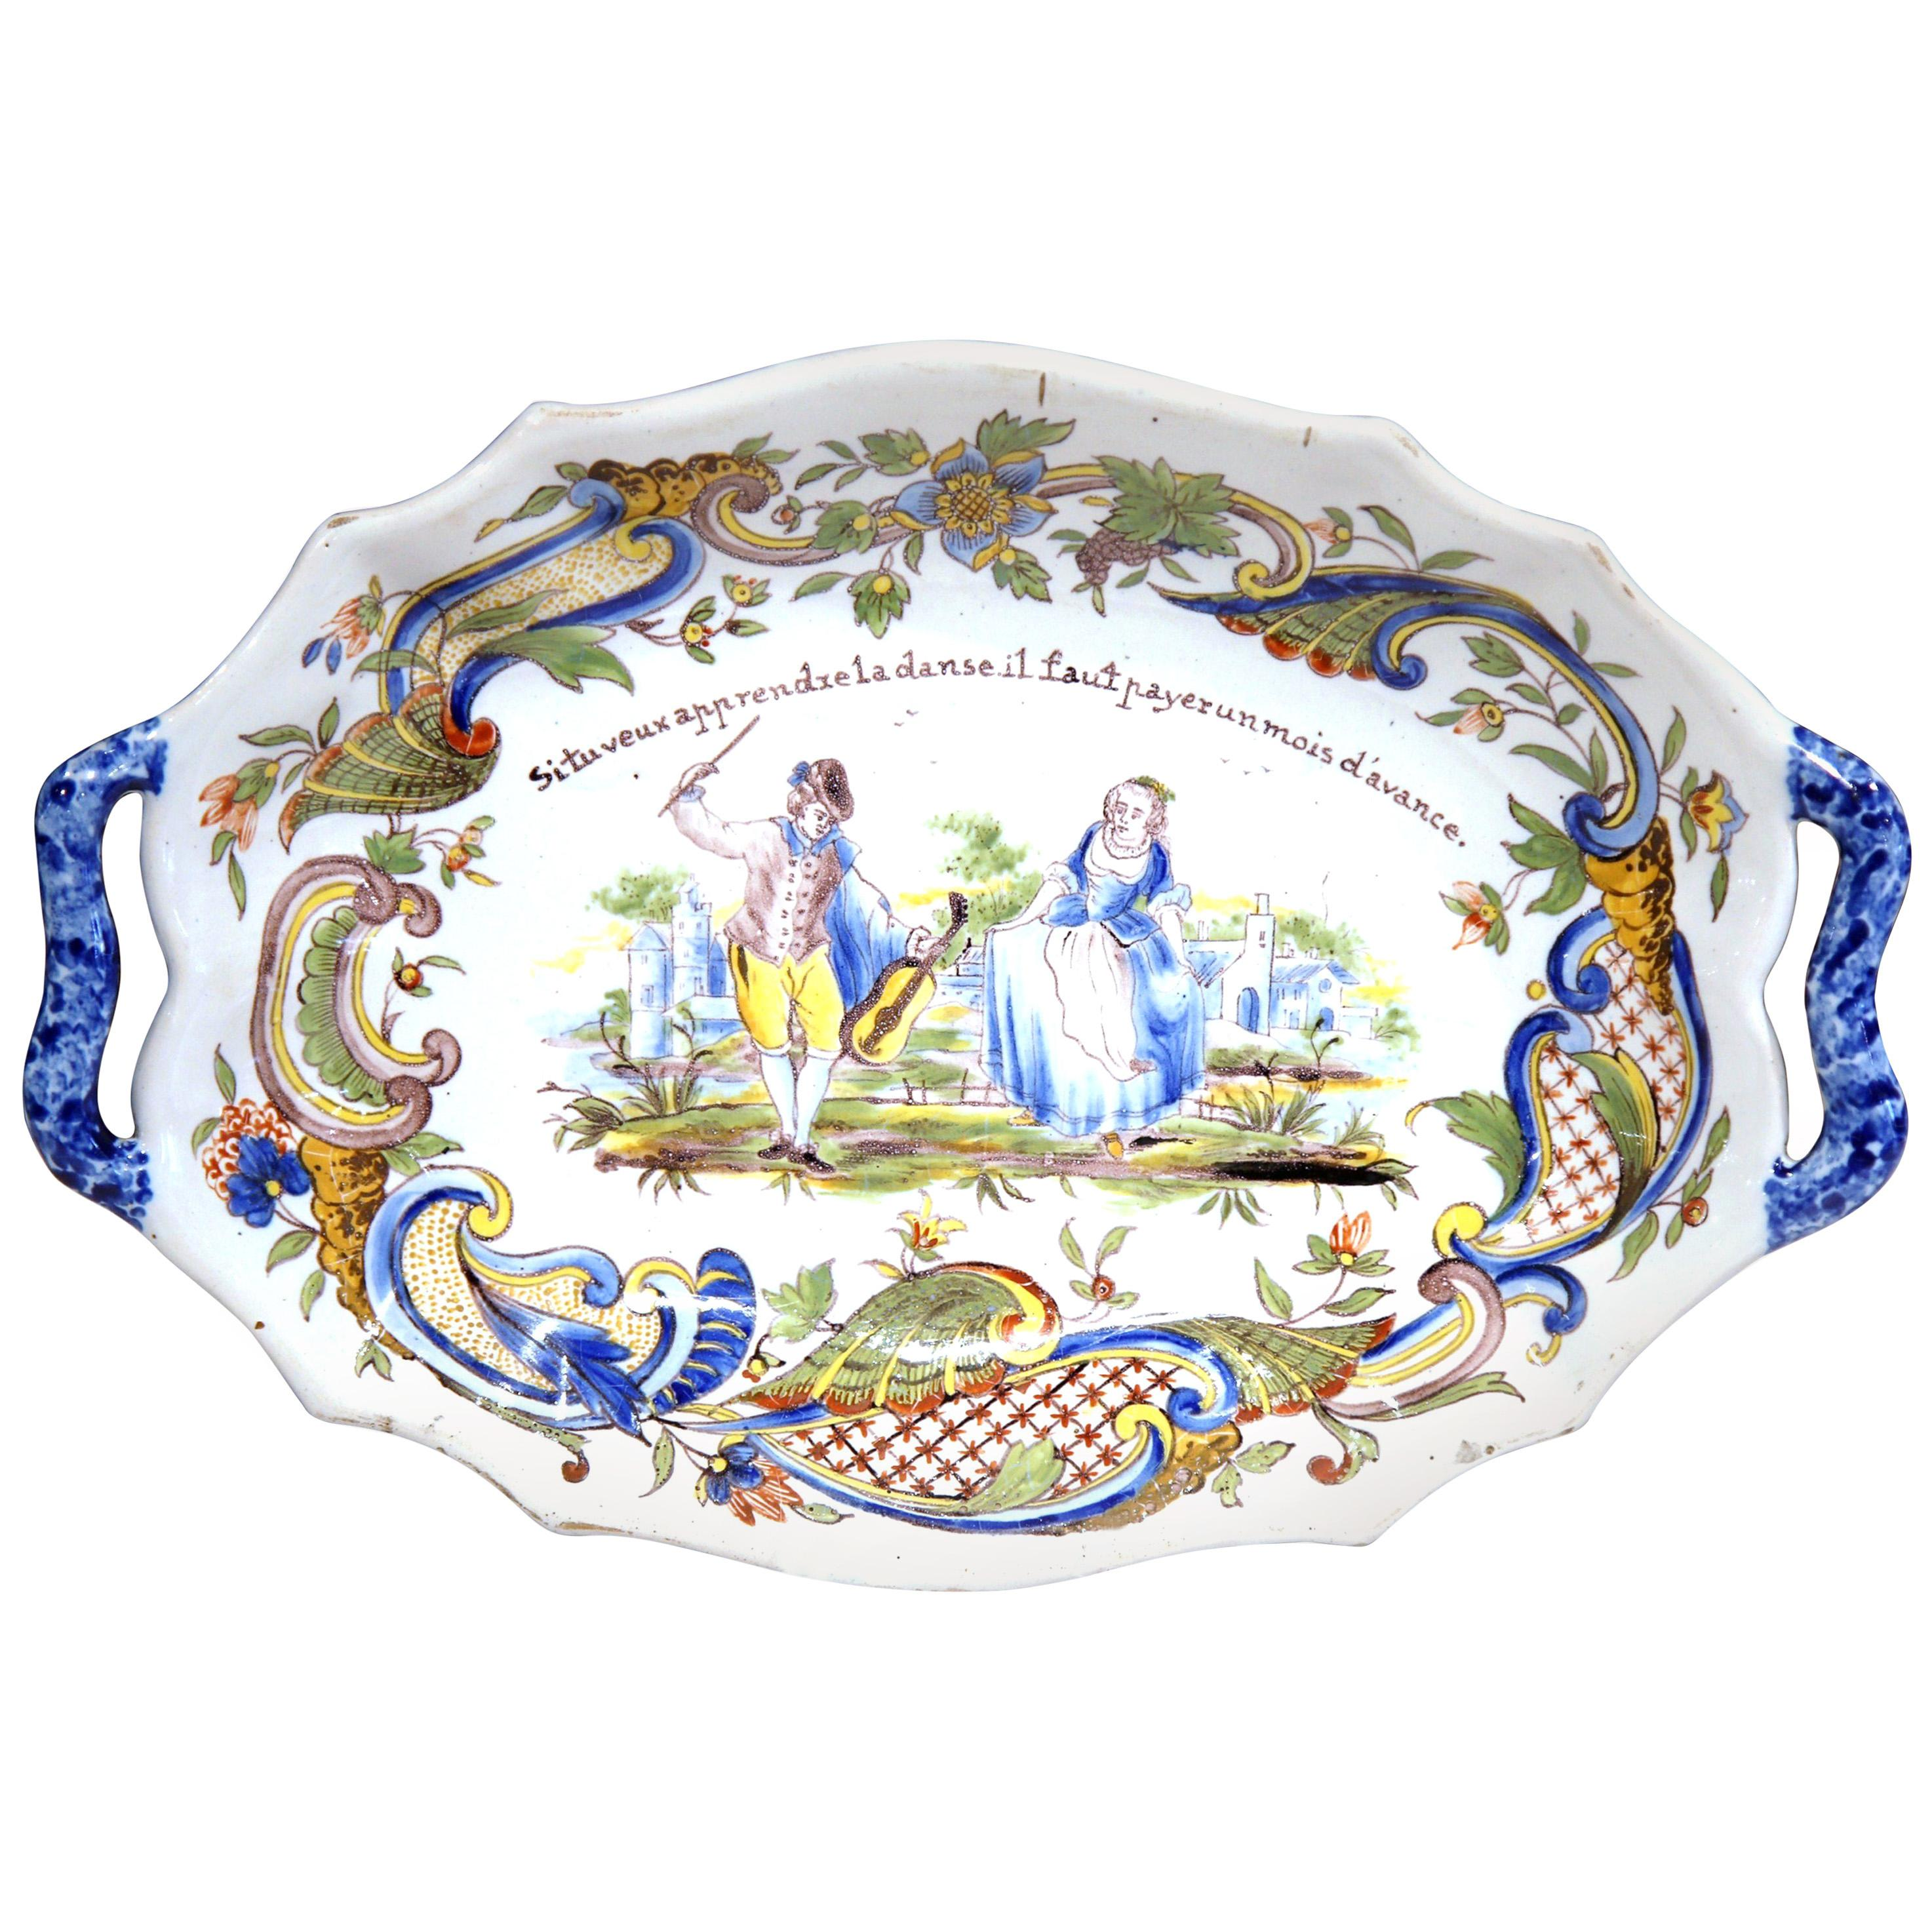 19th Century French Hand Painted Oval Faience Wall Platter from Rouen